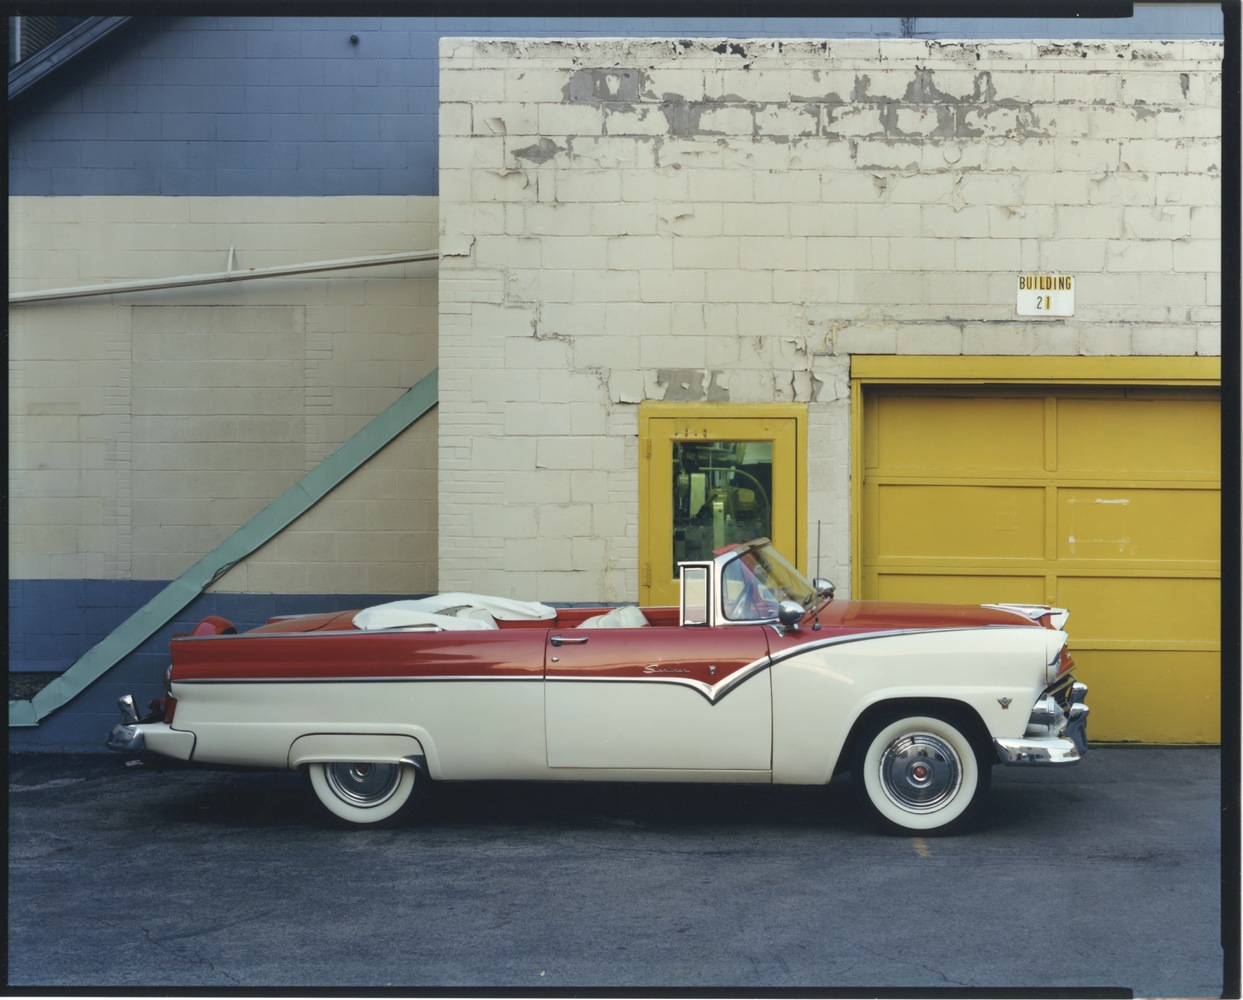 1955 Ford Sunliner, Building 21, Upstate NY, 1988